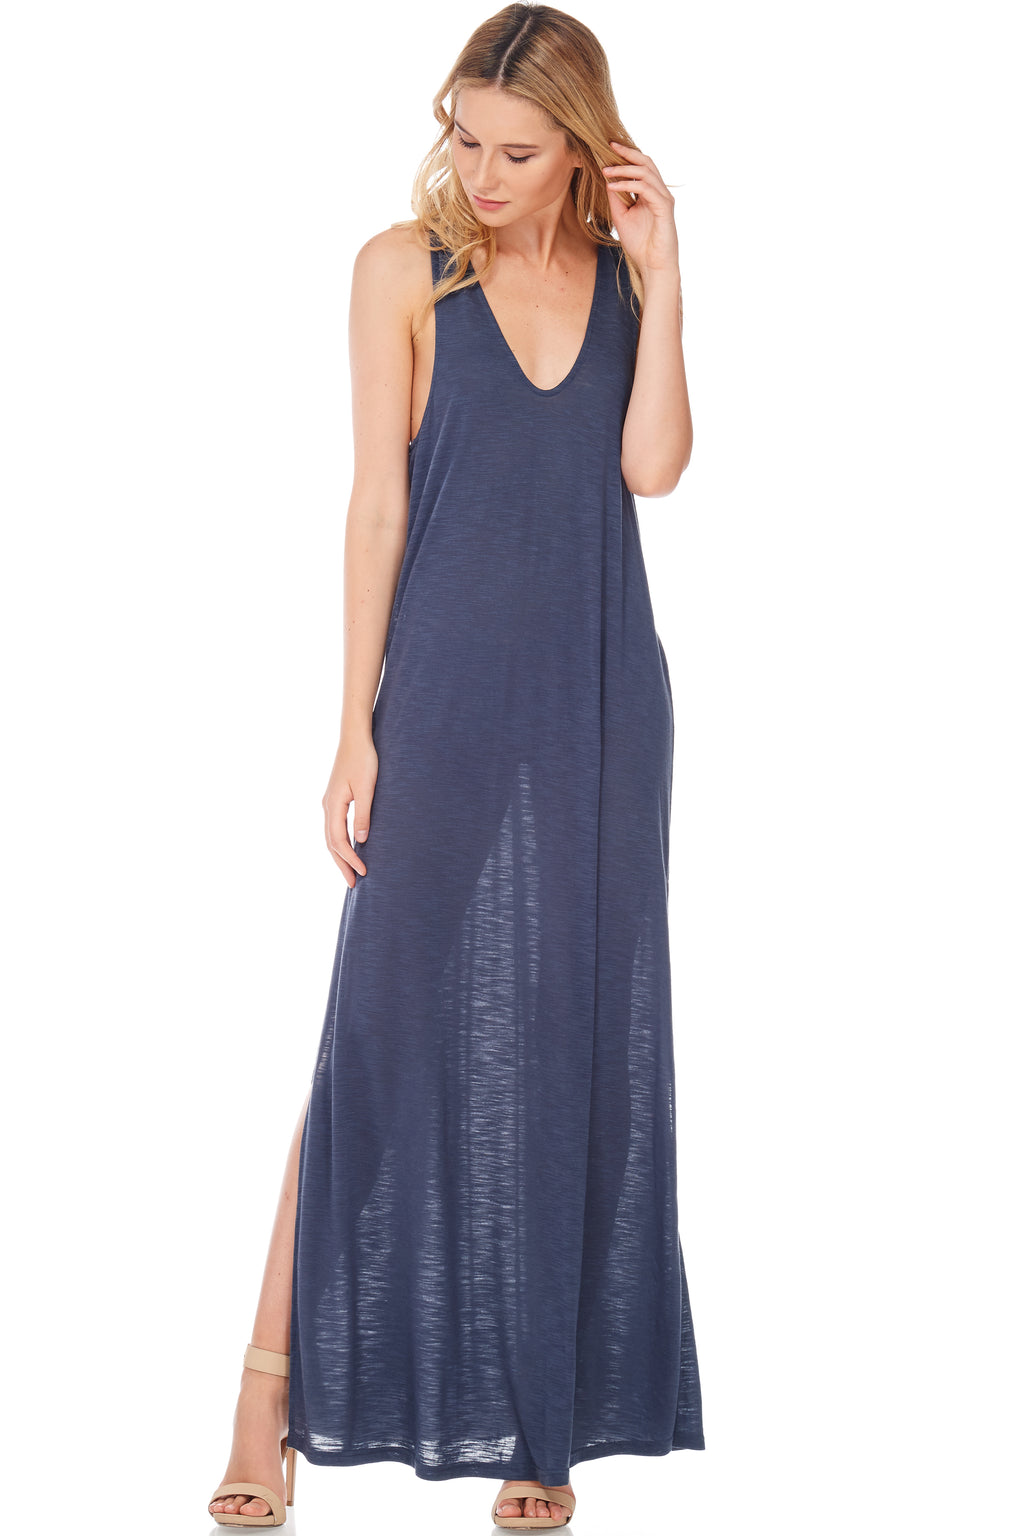 S18-078 Twist Back Maxi Dress